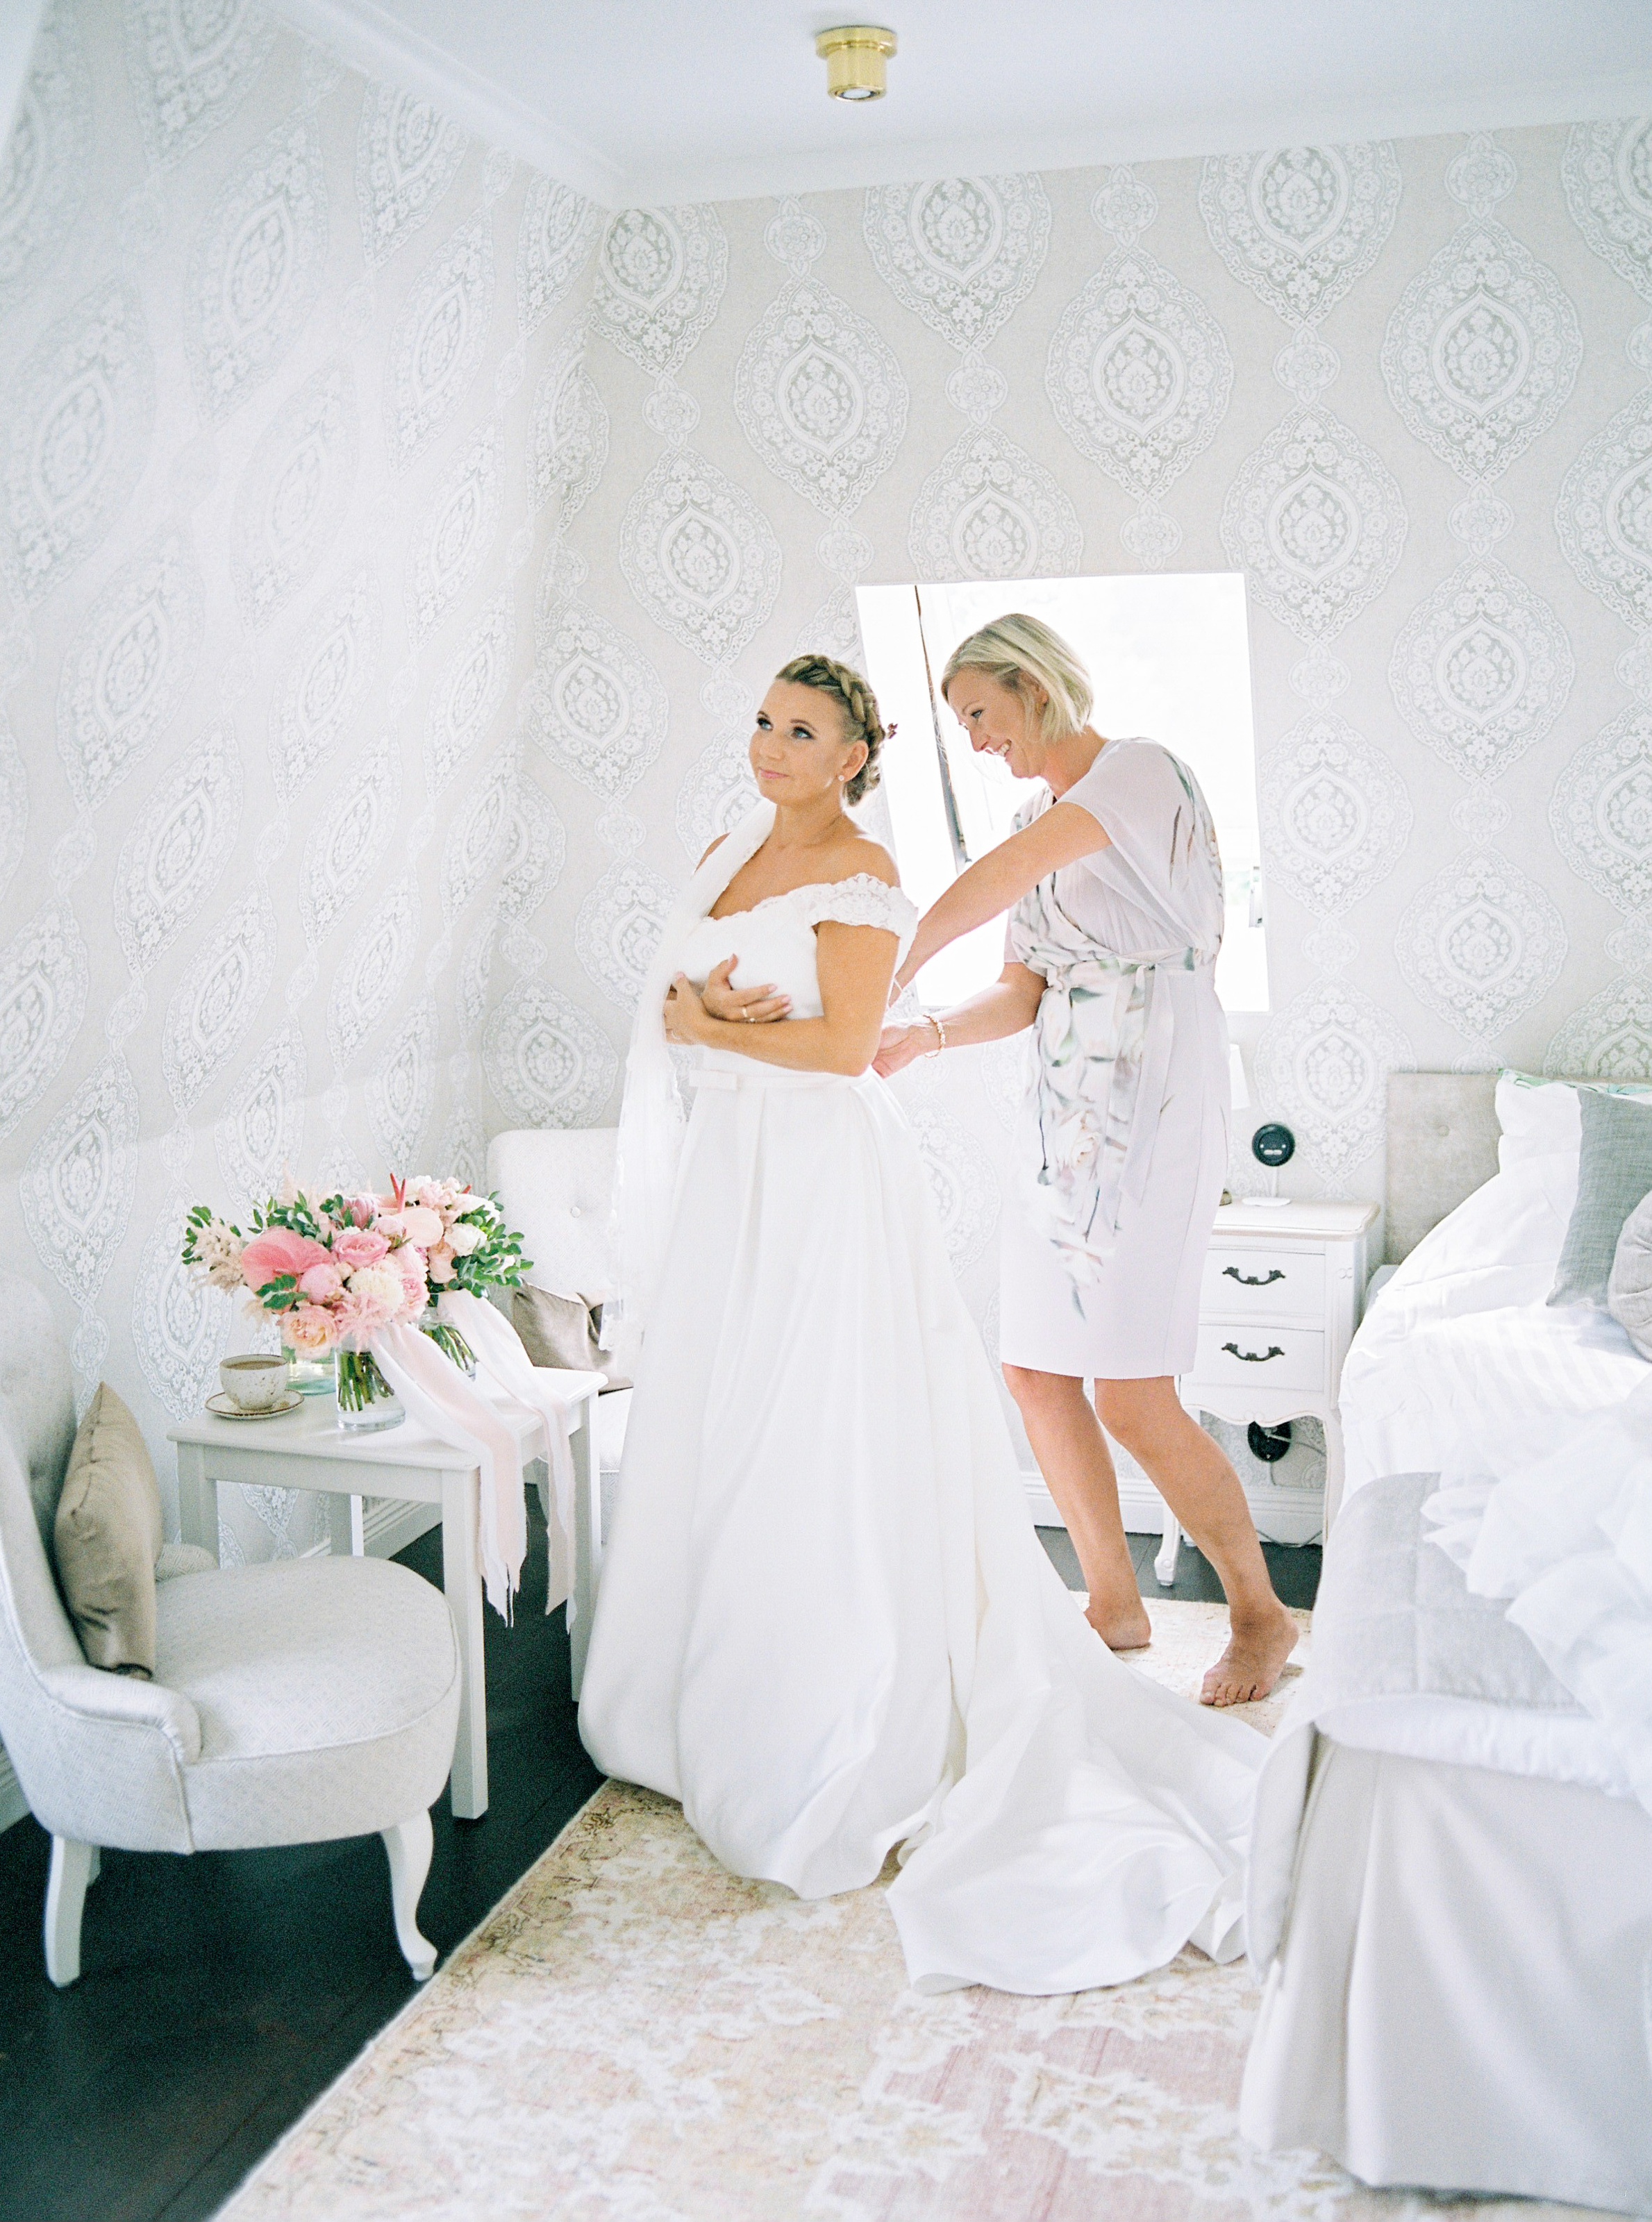 2BridesPhotography_Osbjer_Wedding_0090